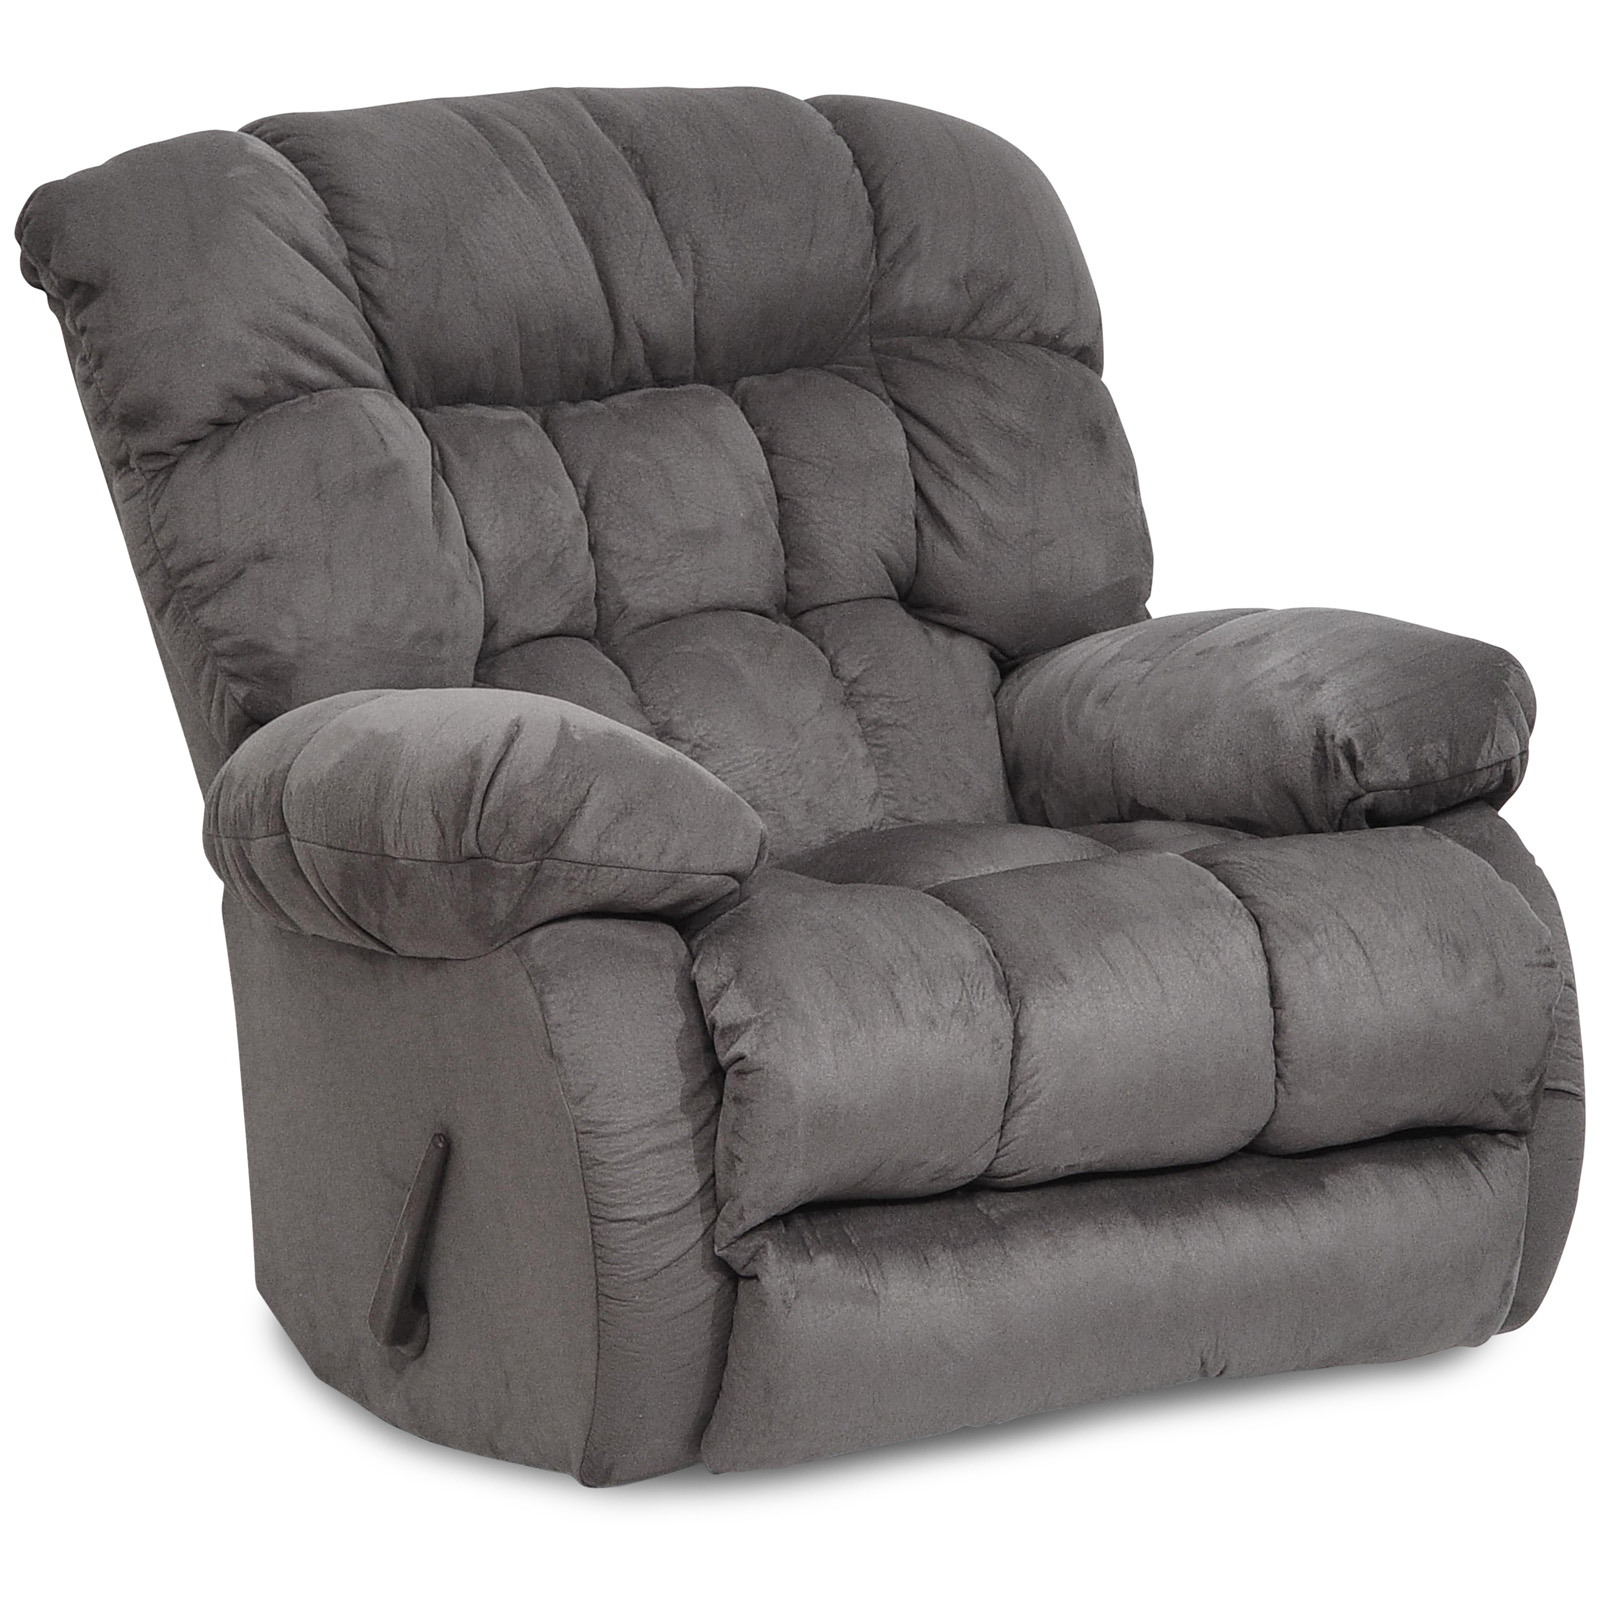 deluxe master bear catnapper recliner teddy chaise hayneedle cfm product teddybearswivelgliderrecliner